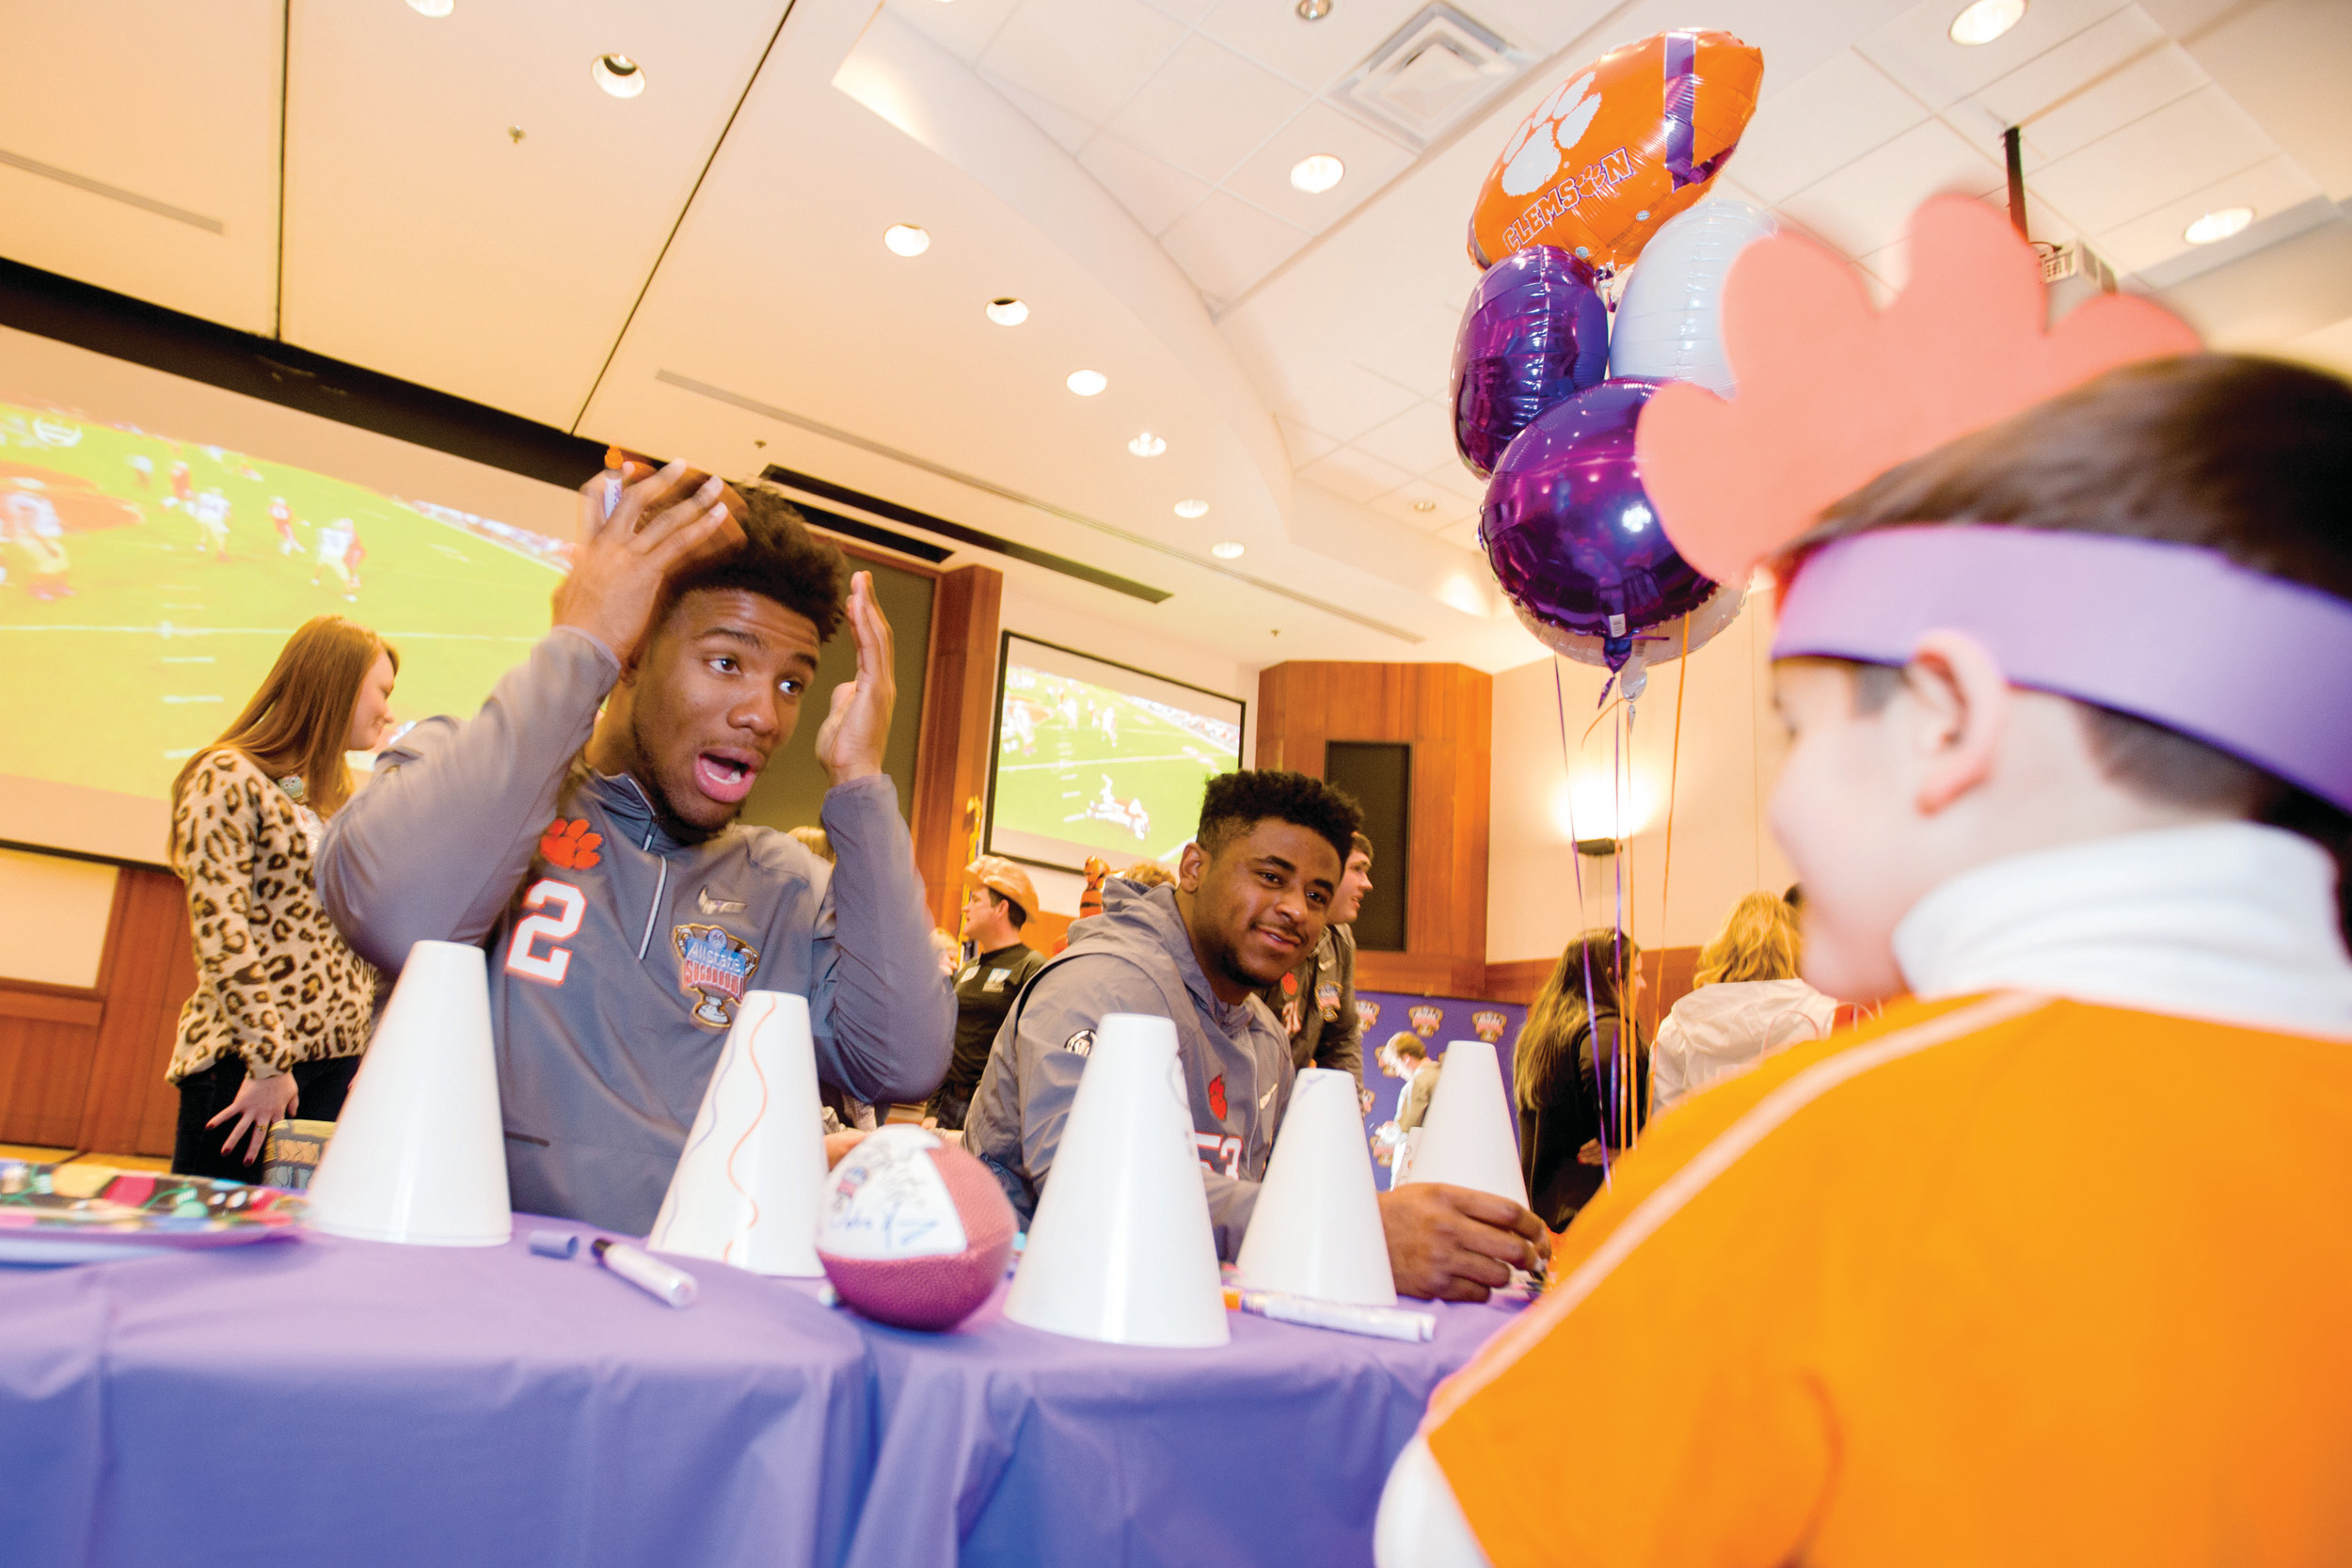 Clemson quarterback Kelly Bryant plays around with a patient of Ochsner Baptist Children's Hospital while he decorates a megaphone at a party thrown on Saturday for the patients and their families in New Orleans.